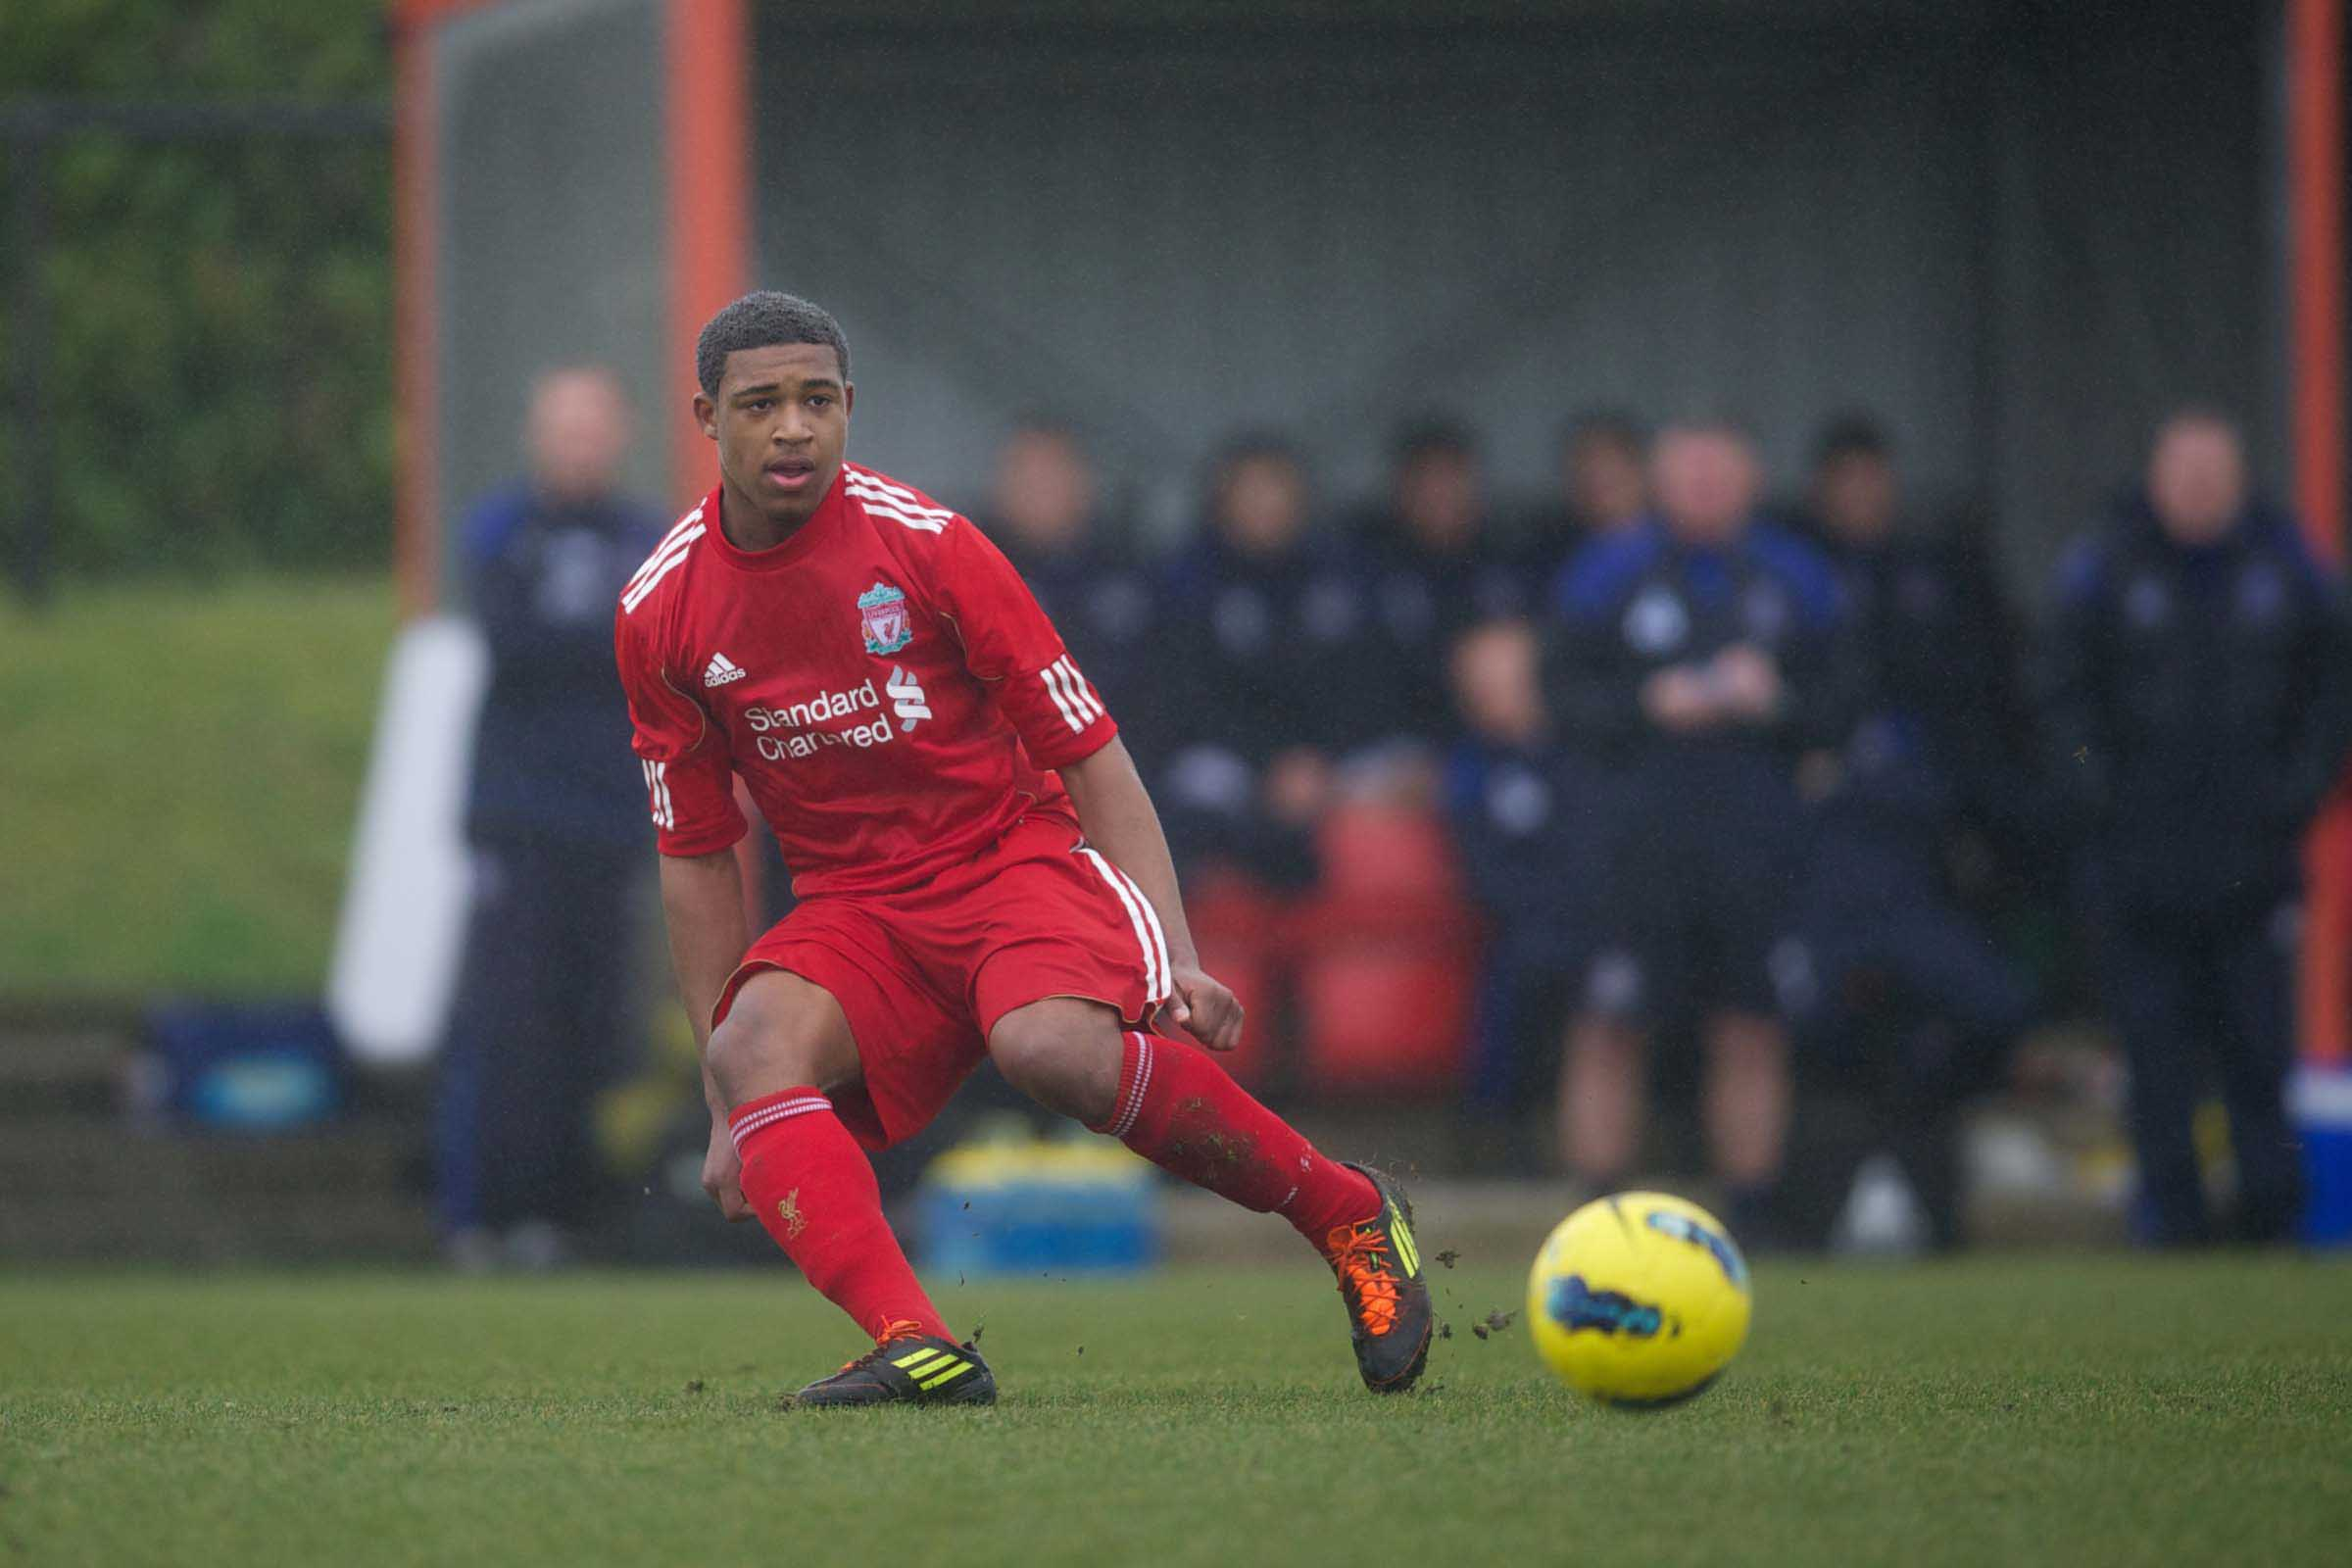 JORDON IBE: A VICTORY FOR DEVELOPMENT